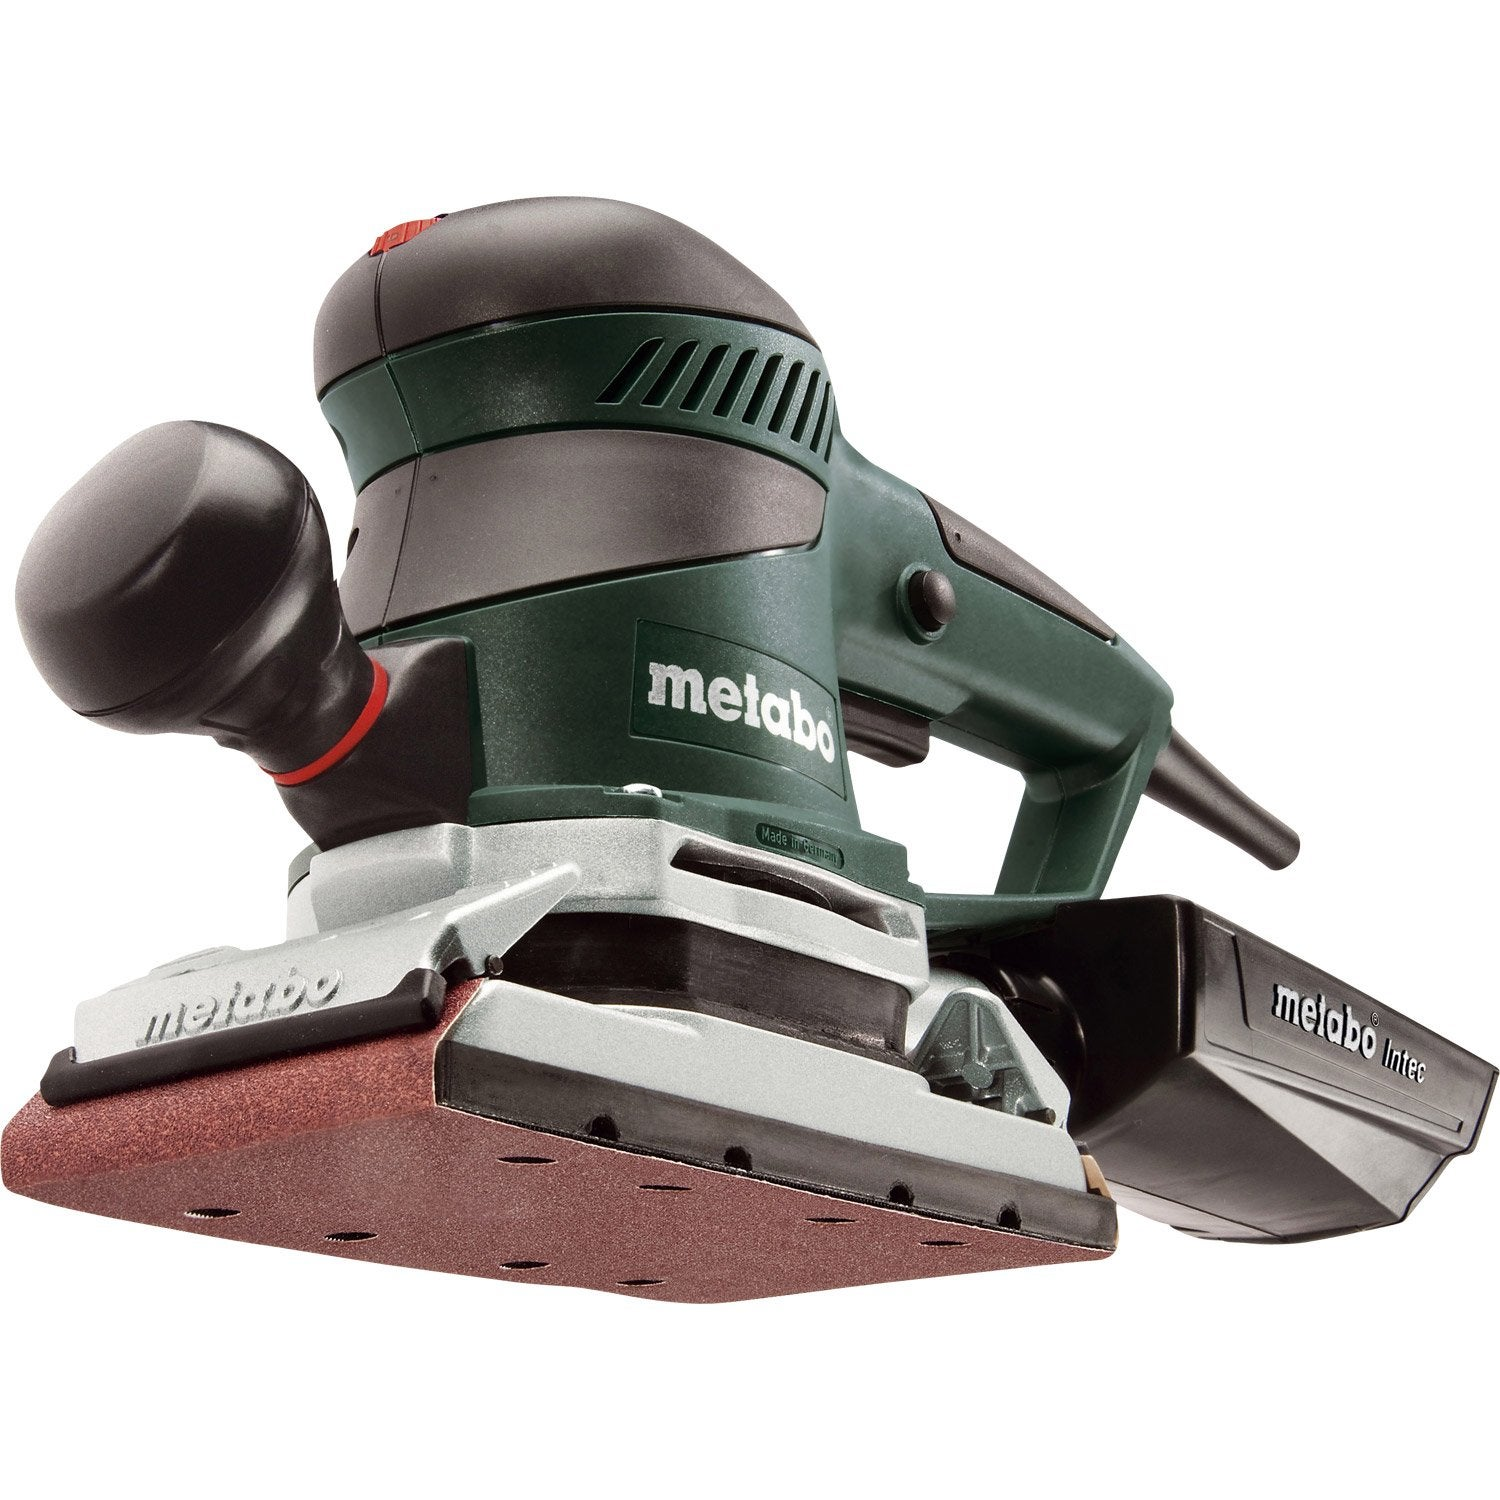 Ponceuse vibrante filaire metabo sre 4350 turbotec 350 w leroy merlin - Pieces detachees metabo ...